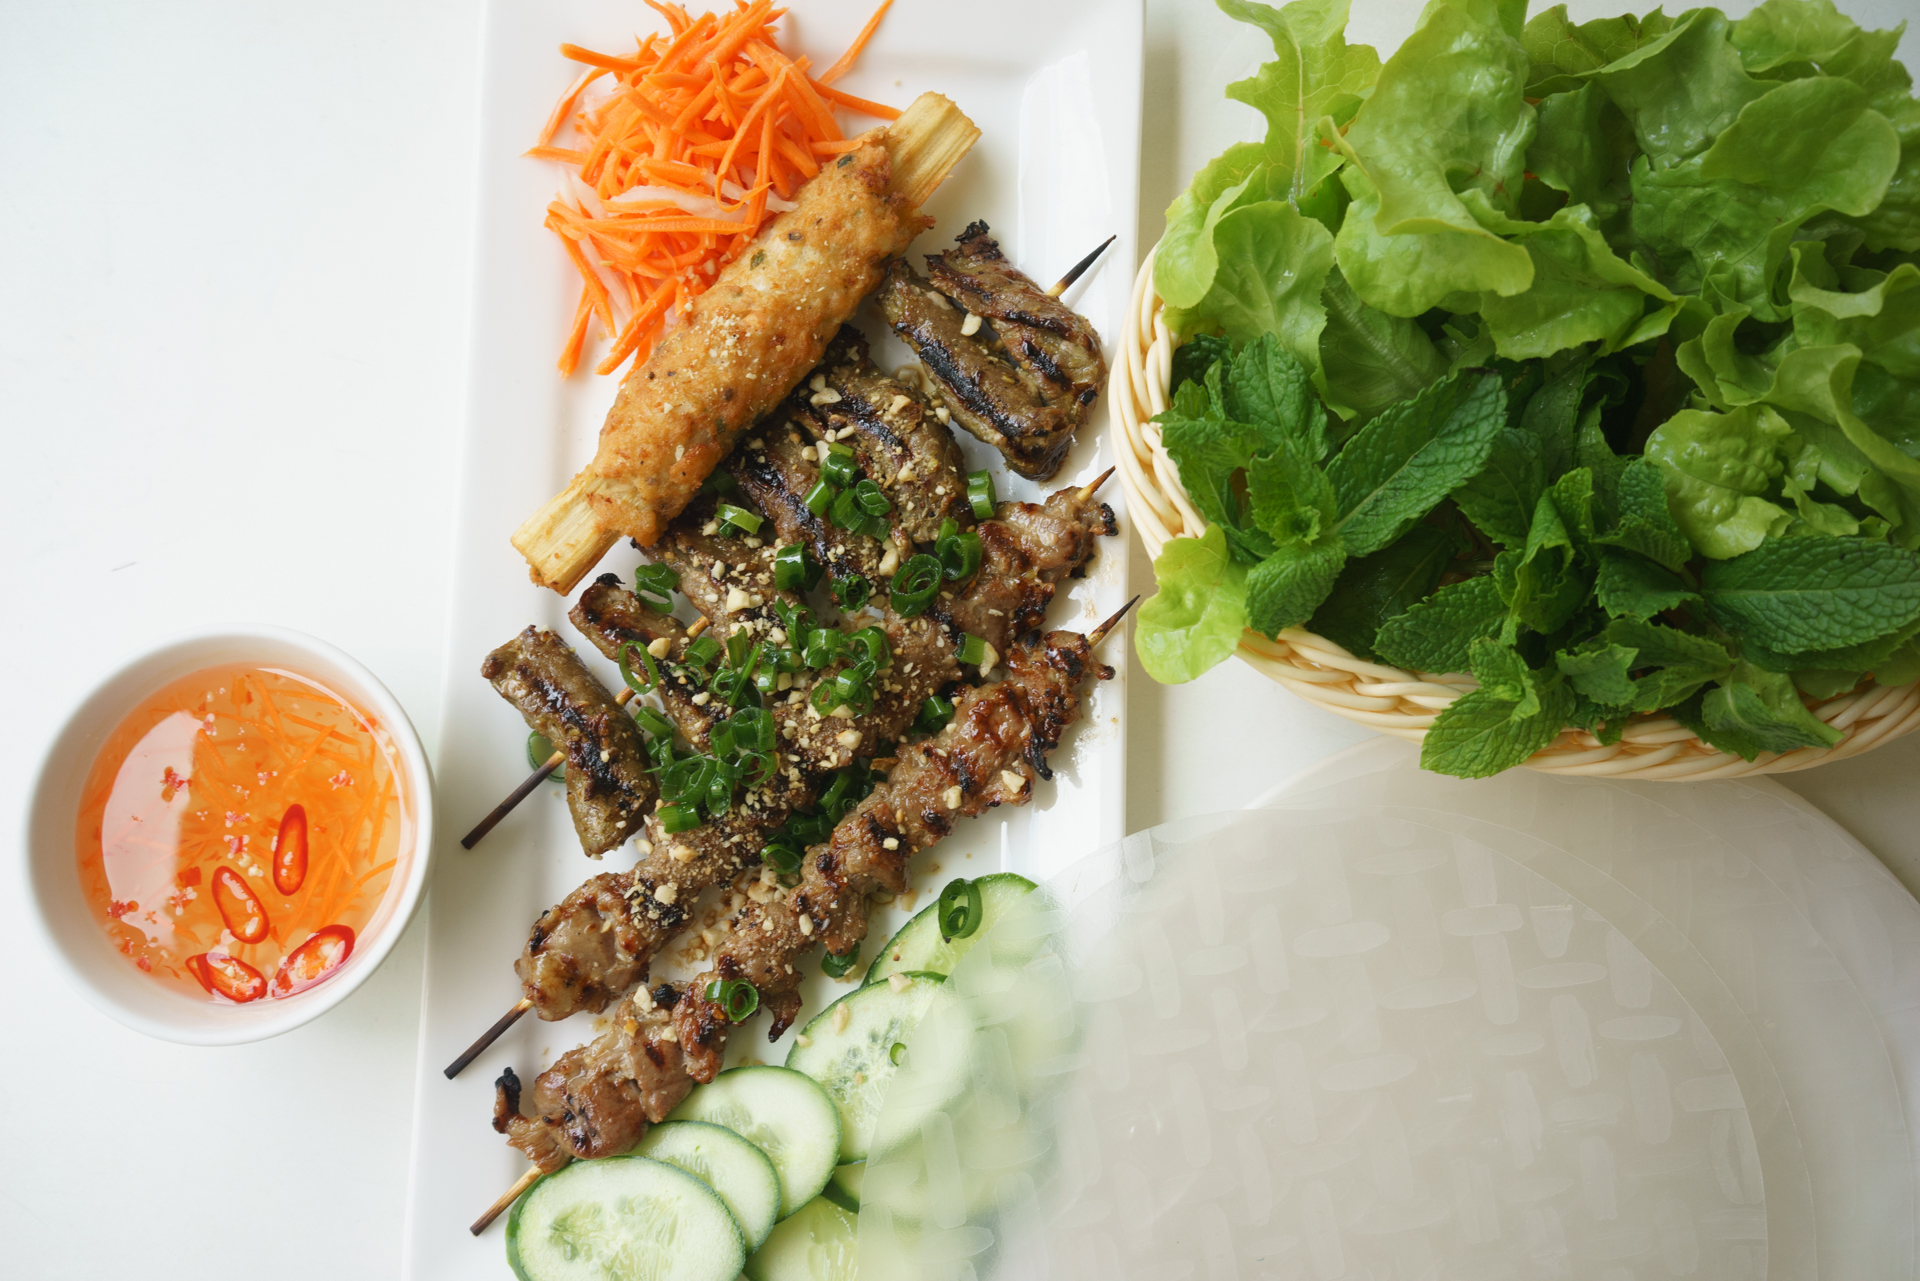 do-it-yourself rice paper rolls from a choice of meats ~ goi cuon dac biet